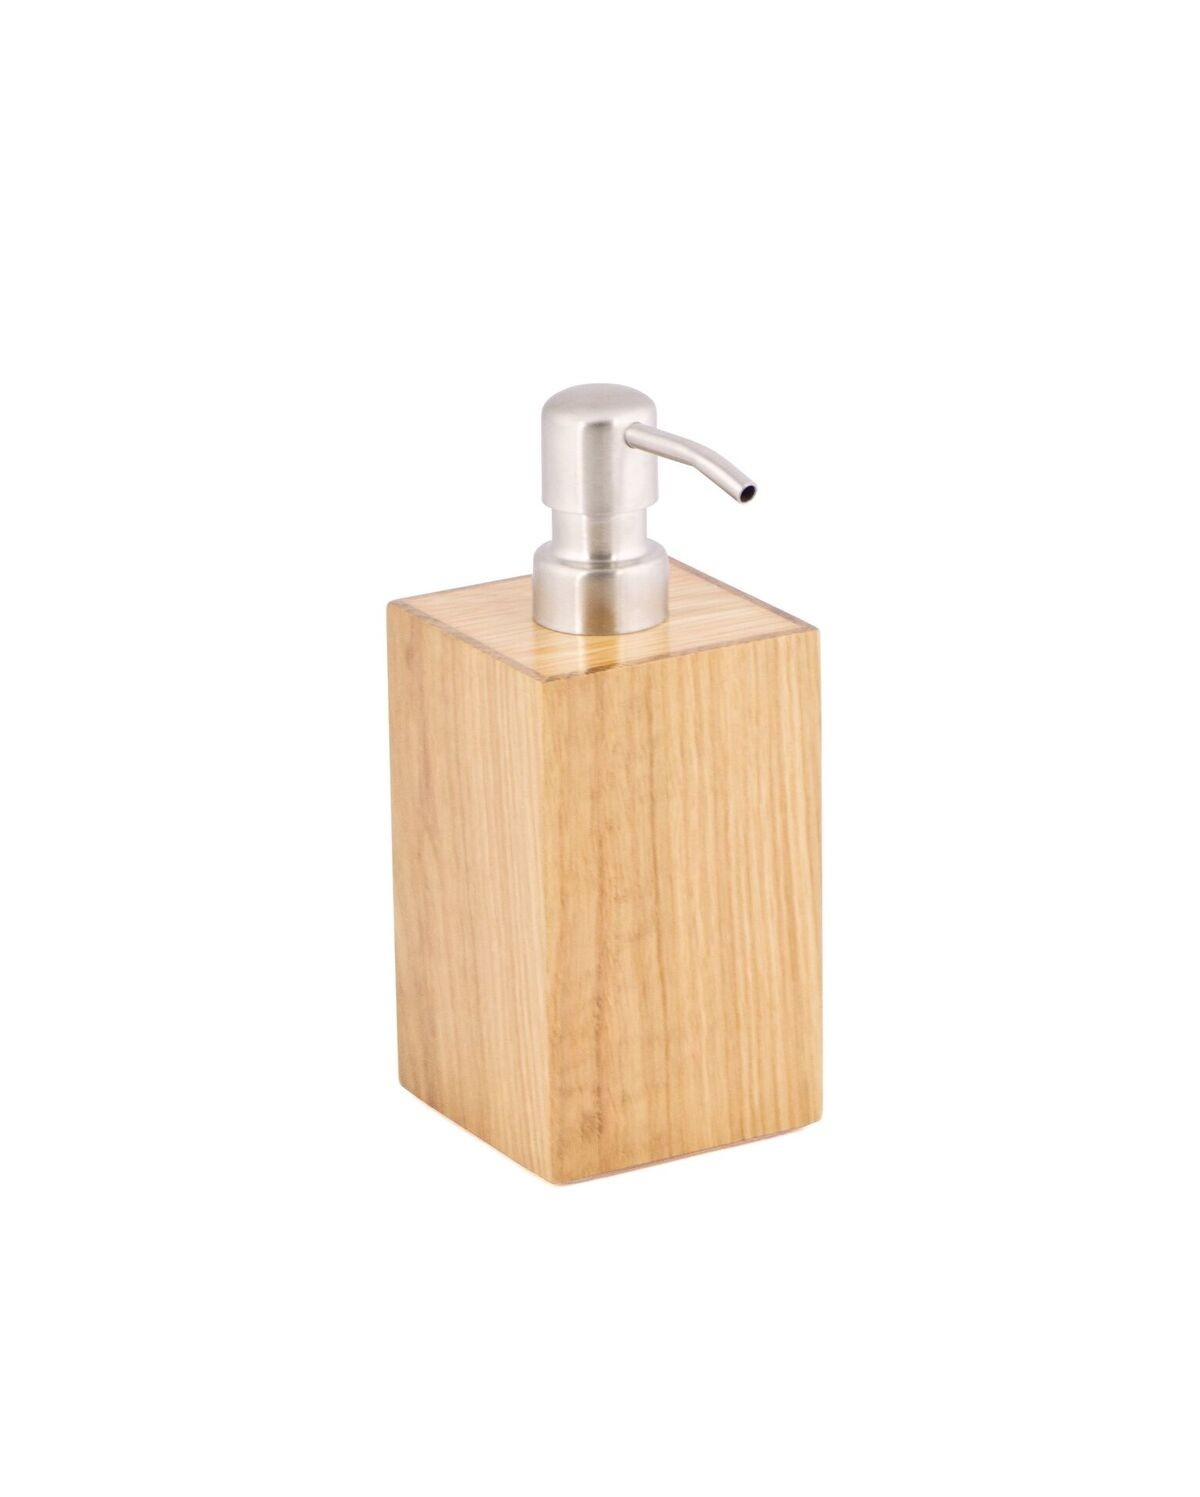 Soap Pump Mezza Soap Pump Mezza - natural oak